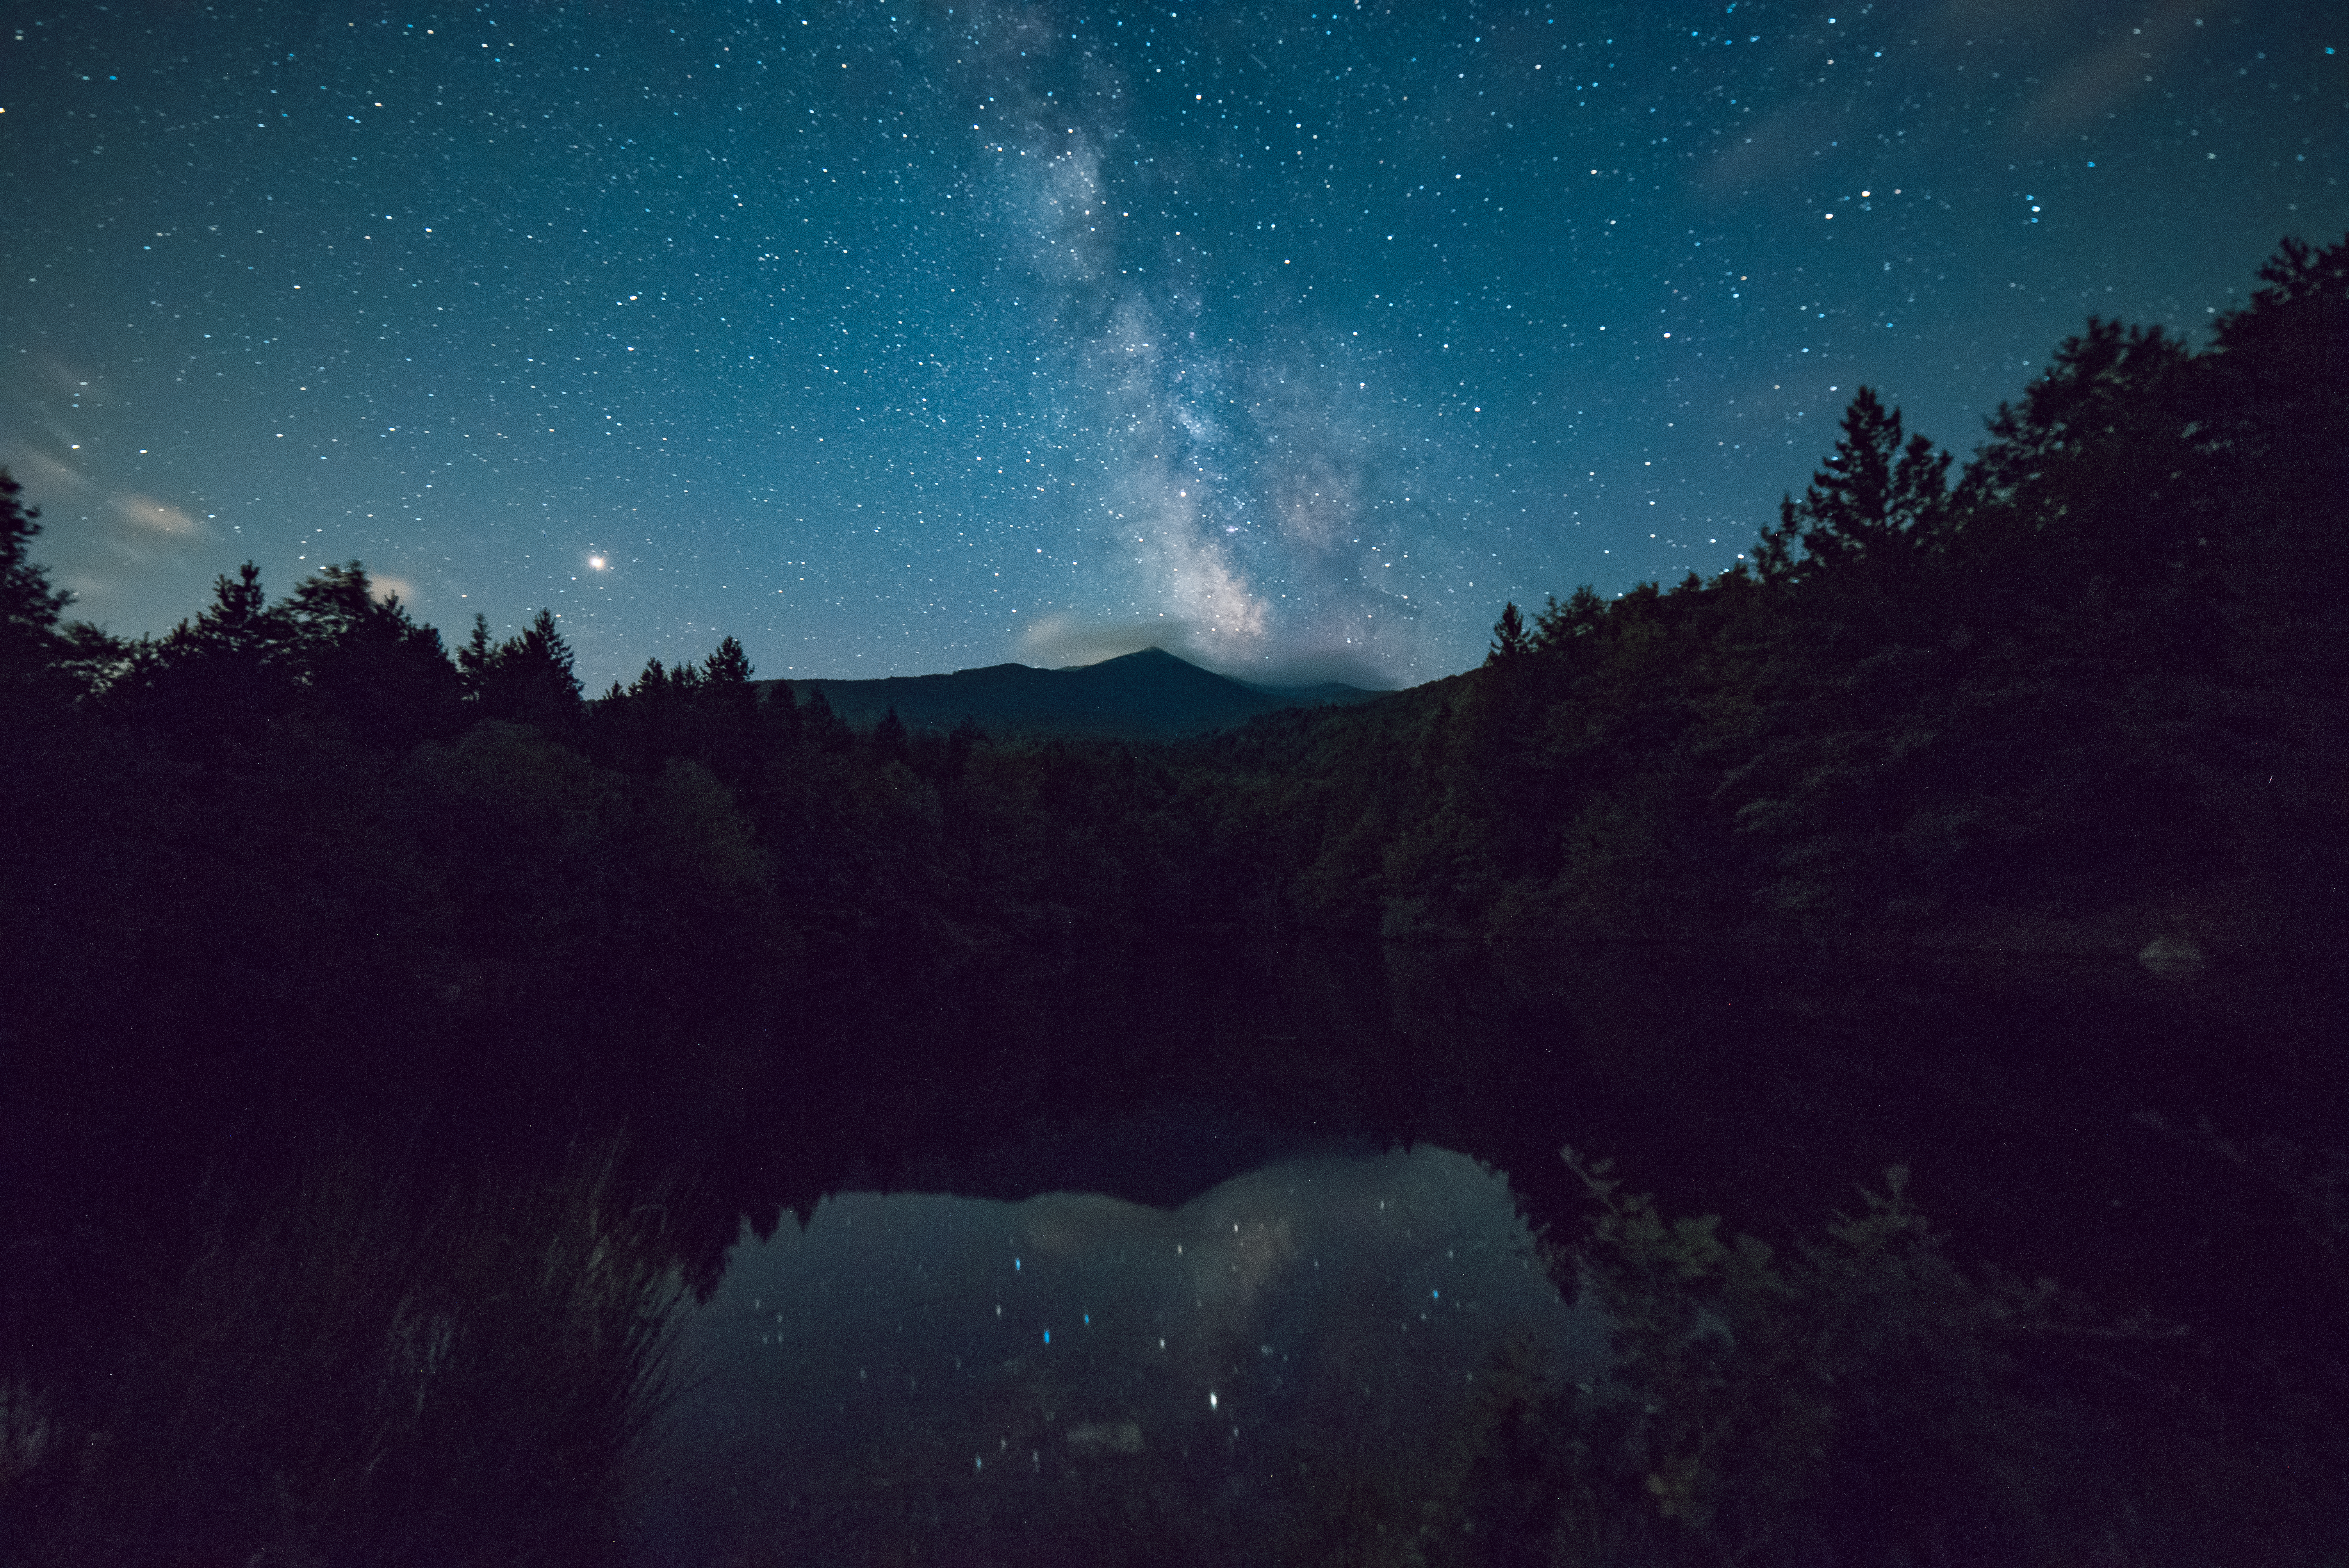 4k Wallpapers      Pexels      Free Stock Photos Scenic View of Night Sky